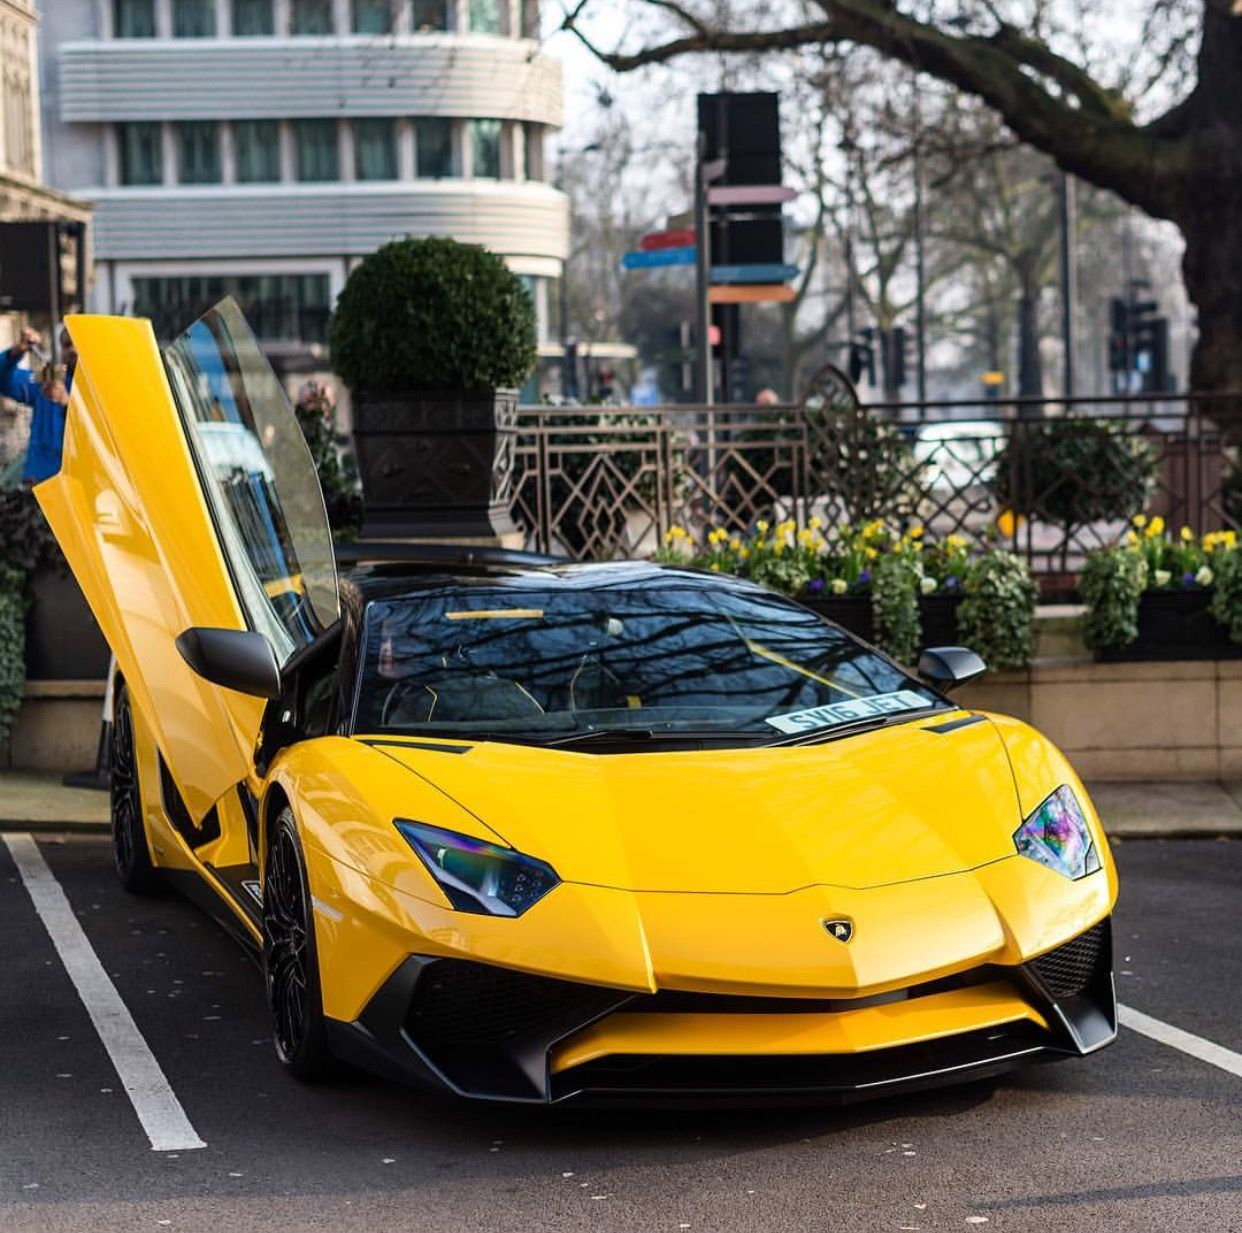 Lamborghini Aventador Super Veloce Roadster Painted In Giallo Horus Photo  Taken By: @horsepower_hunters On